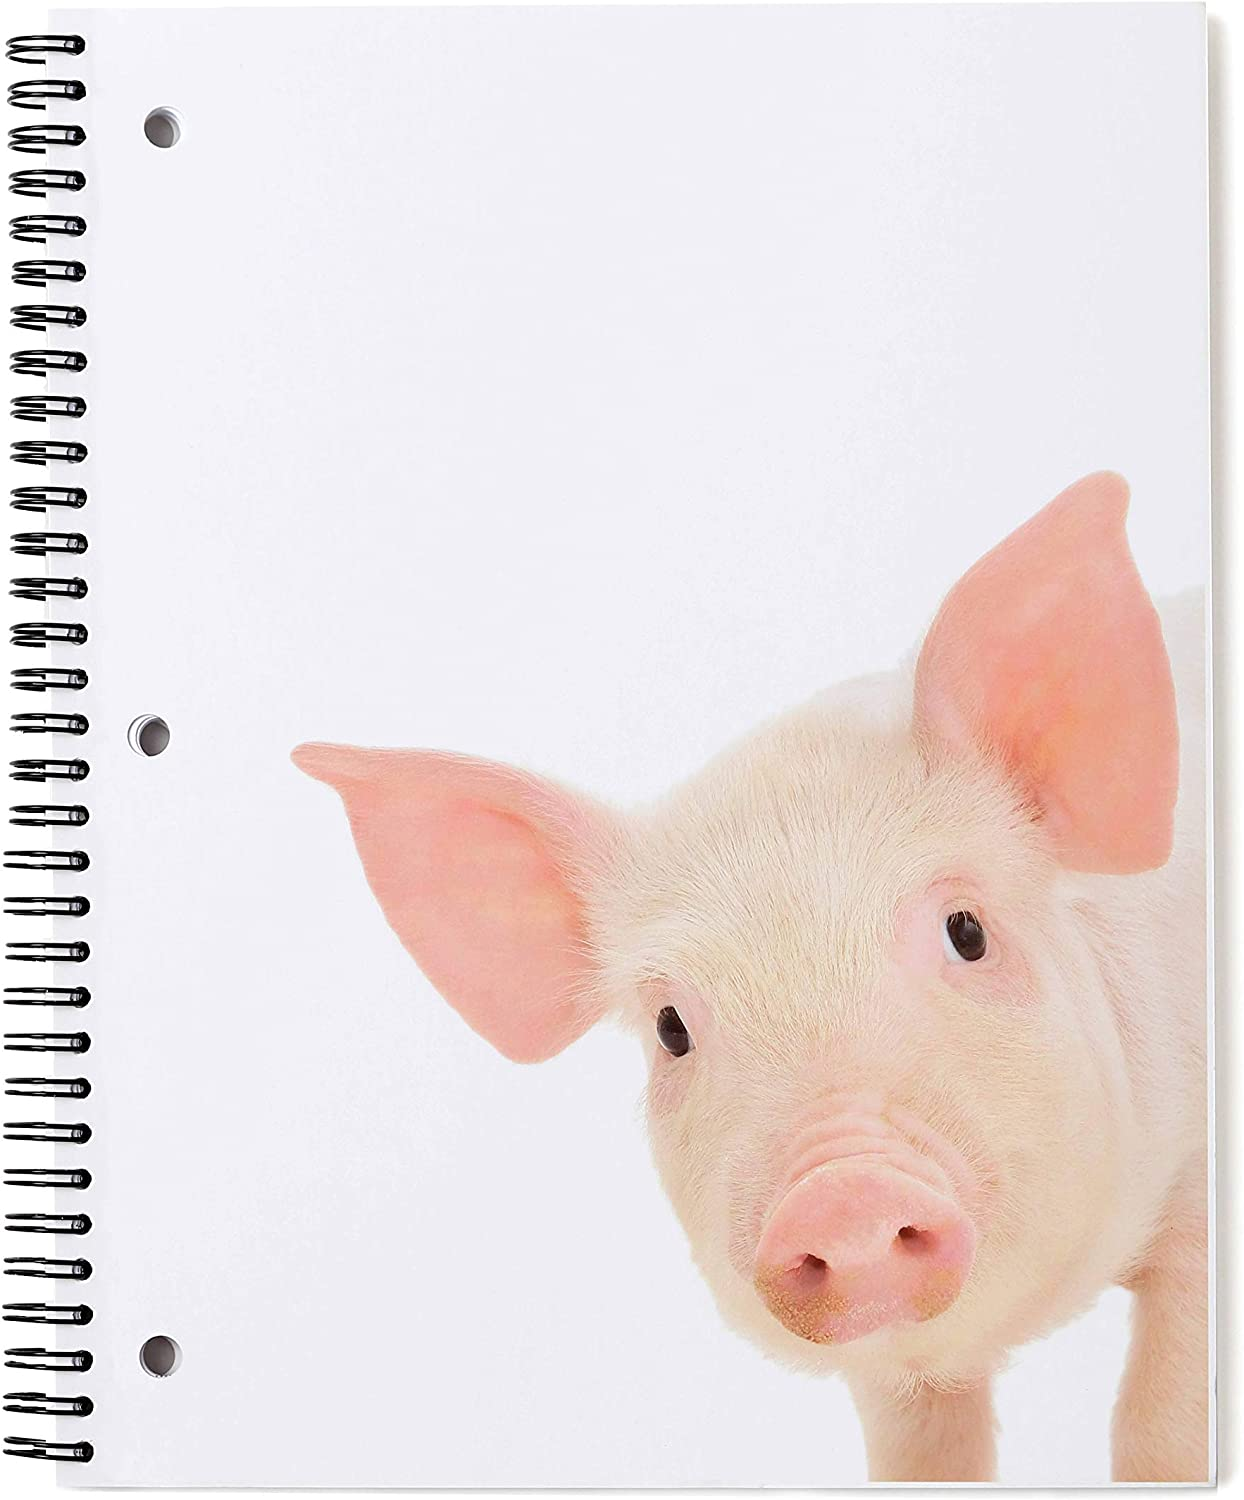 Piggy Pig Spiral Notebook - 1 Subject, Wide Rule, 70 Sheets - Glossy Cover with Quality Paper - 6 Cute, Modern, Fun Animal Note Books Available